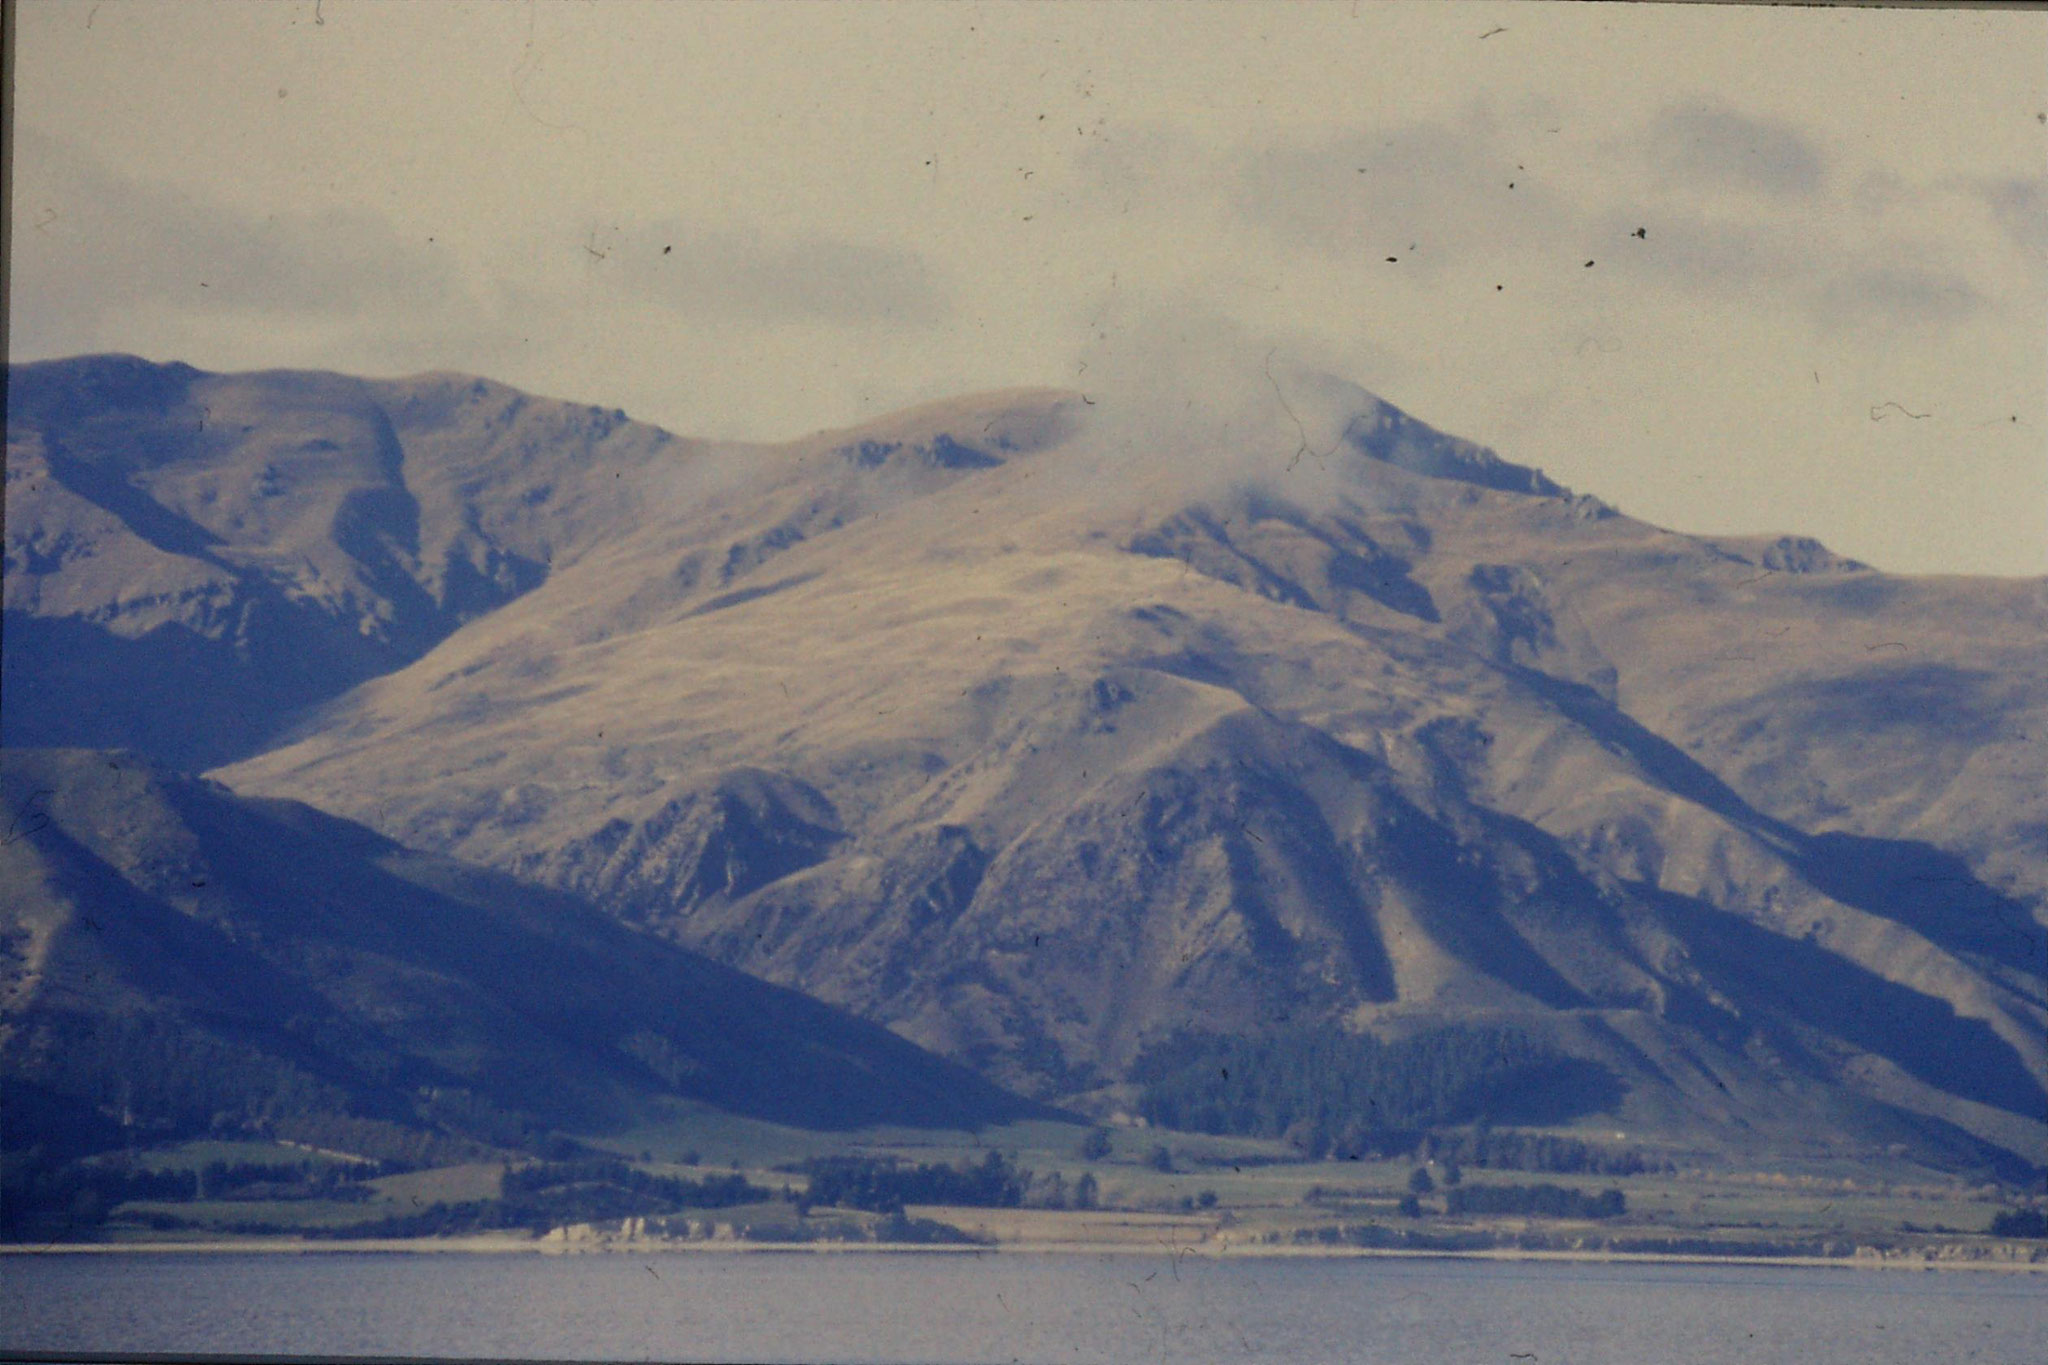 21/8/1990: 21: Lake Hawea